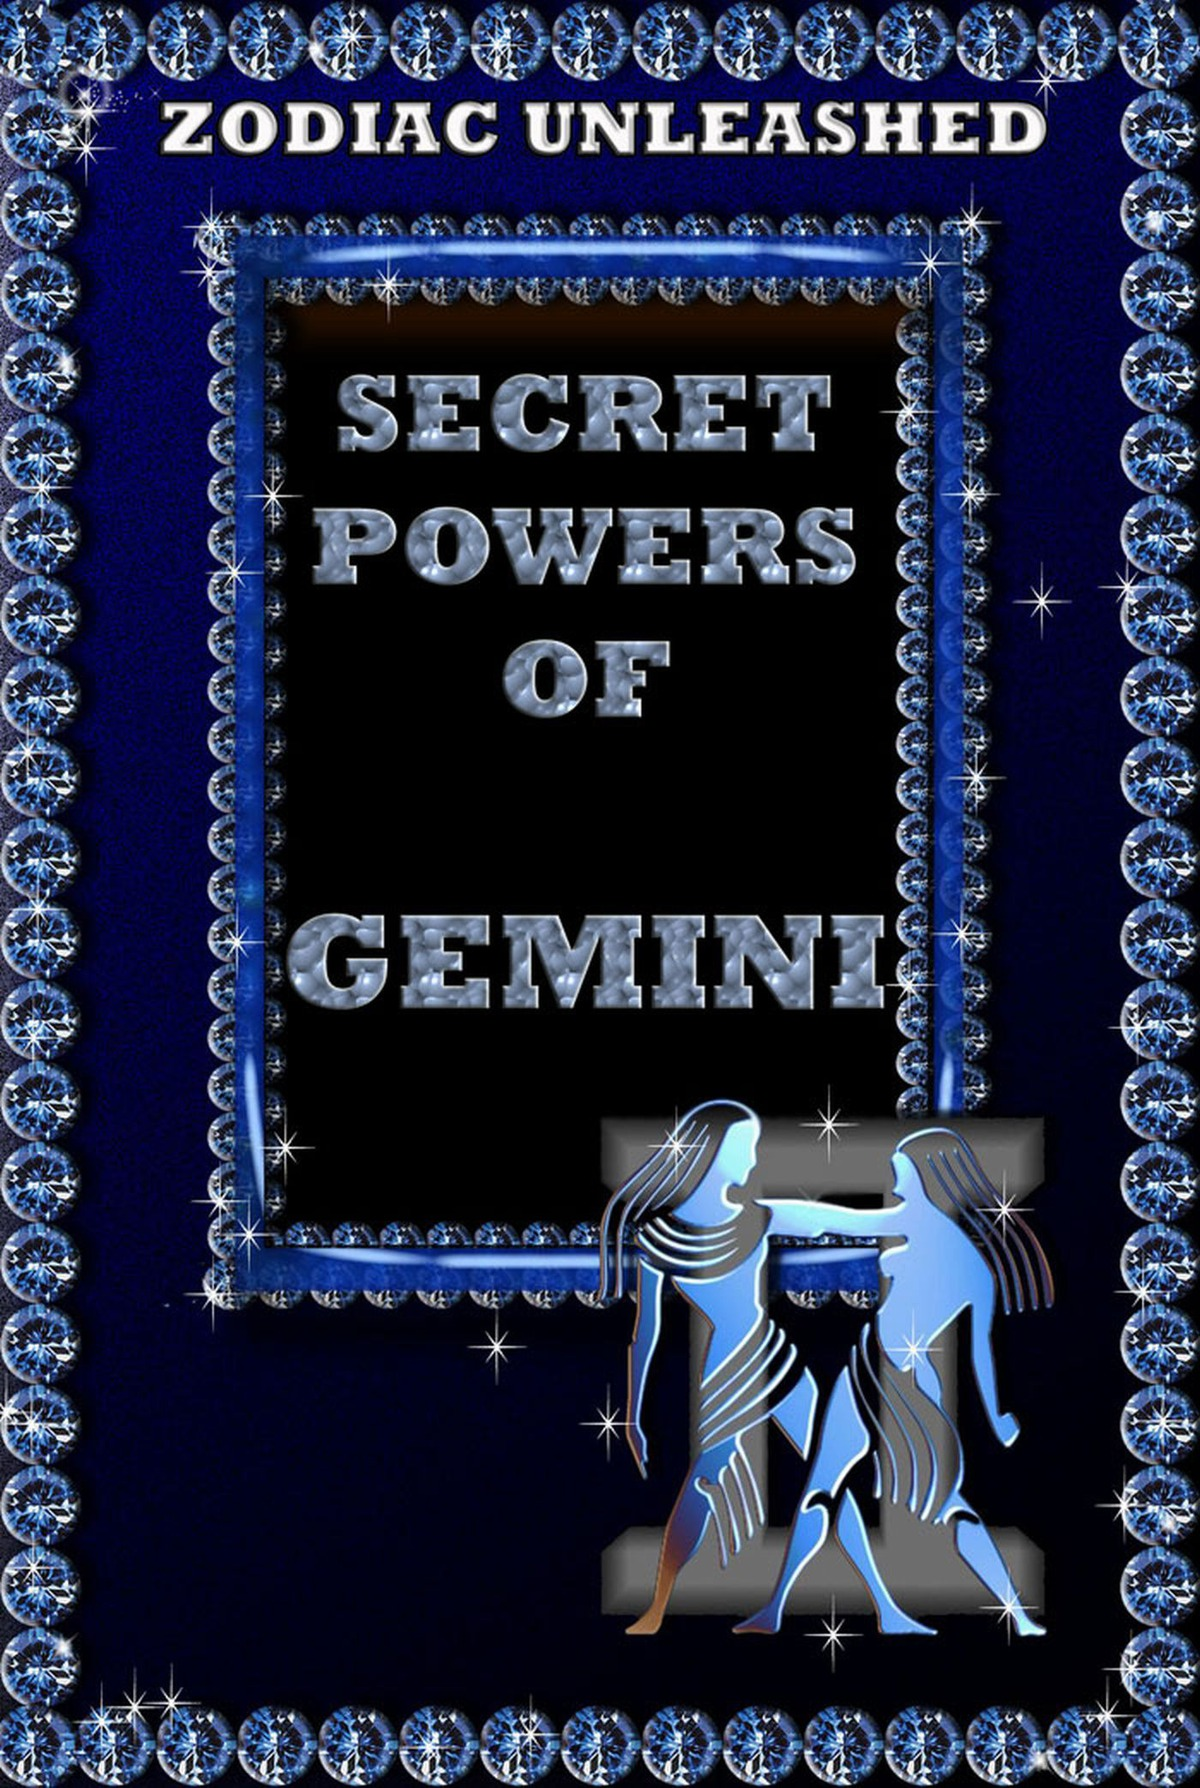 Zodiac Unleashed - Gemini